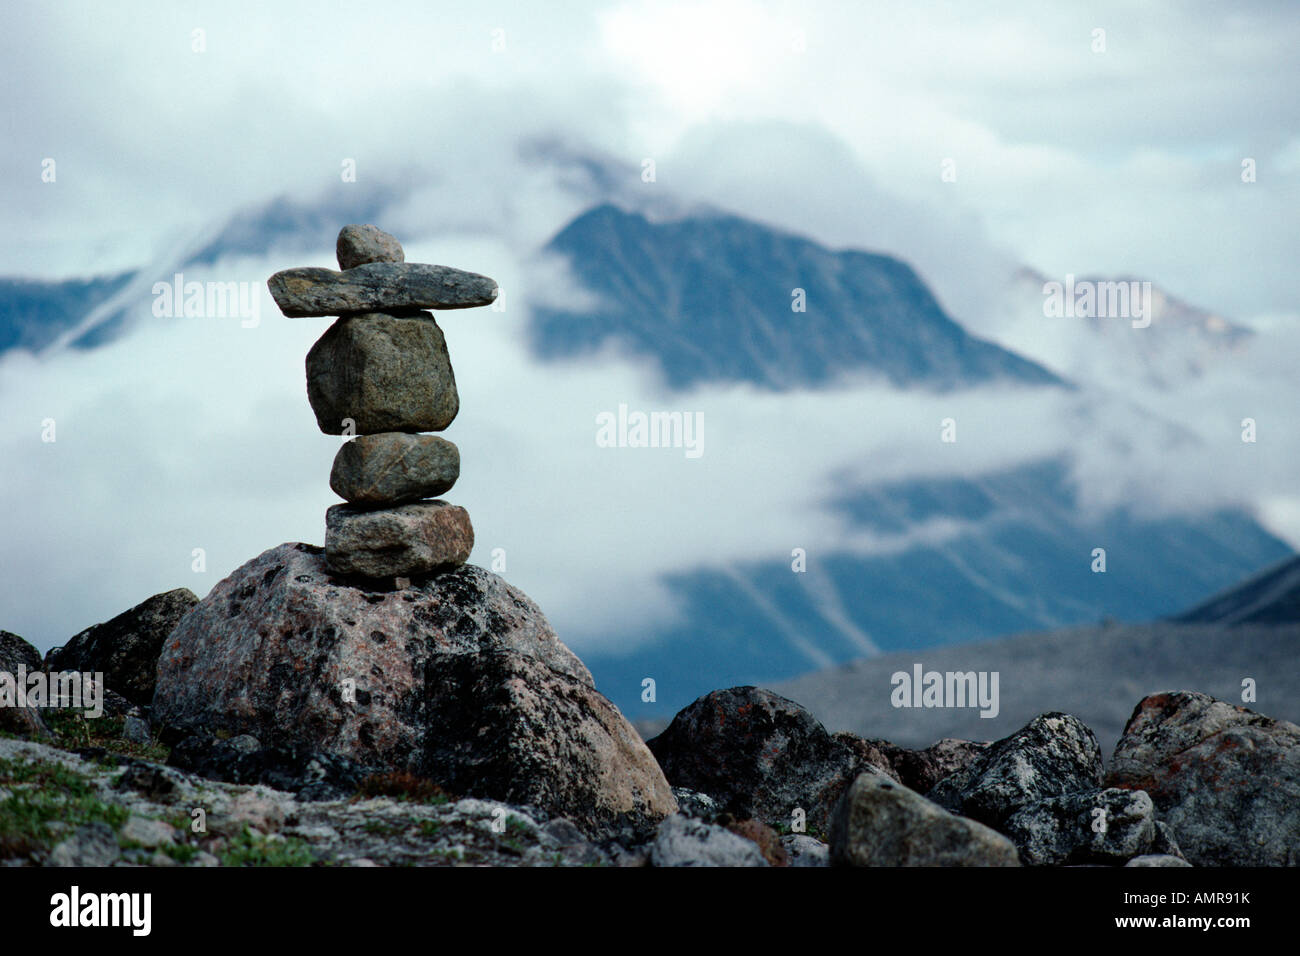 Rock Cairn Trail Marker Built By Inuit People Auyuittuq National Park Nunavut Canada, - Stock Image